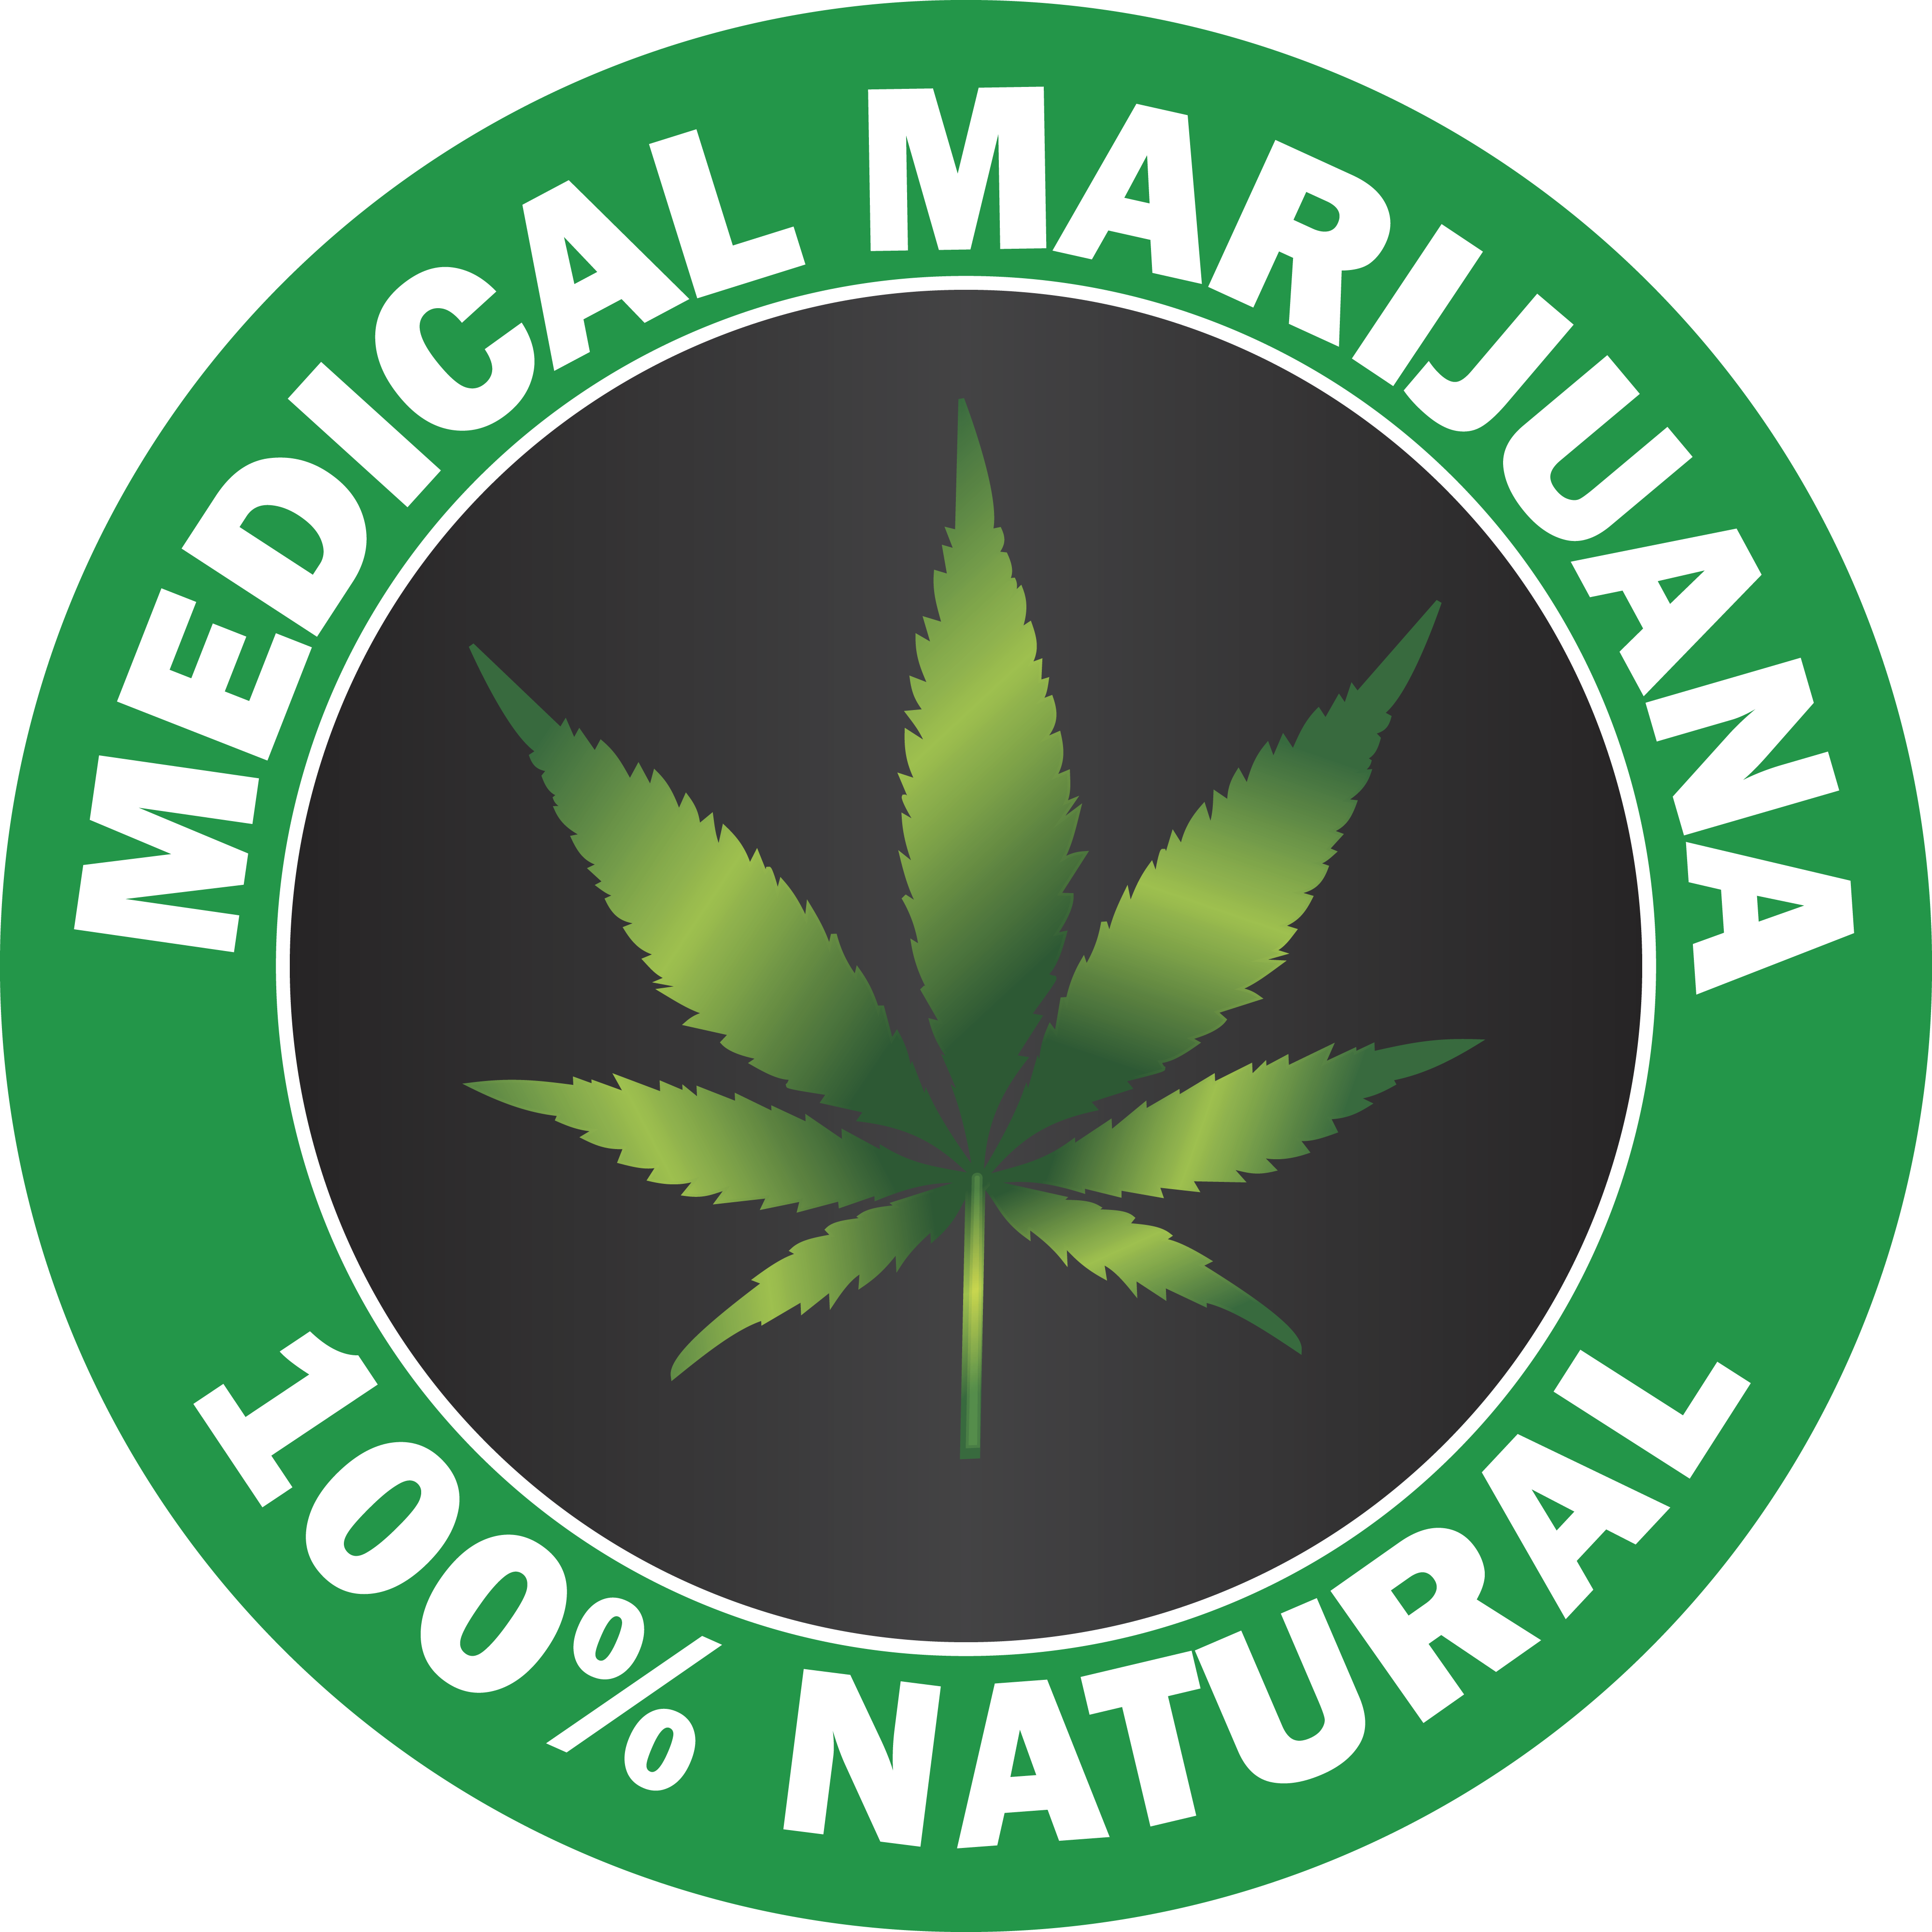 Weed Png | Free download on ClipArtMag